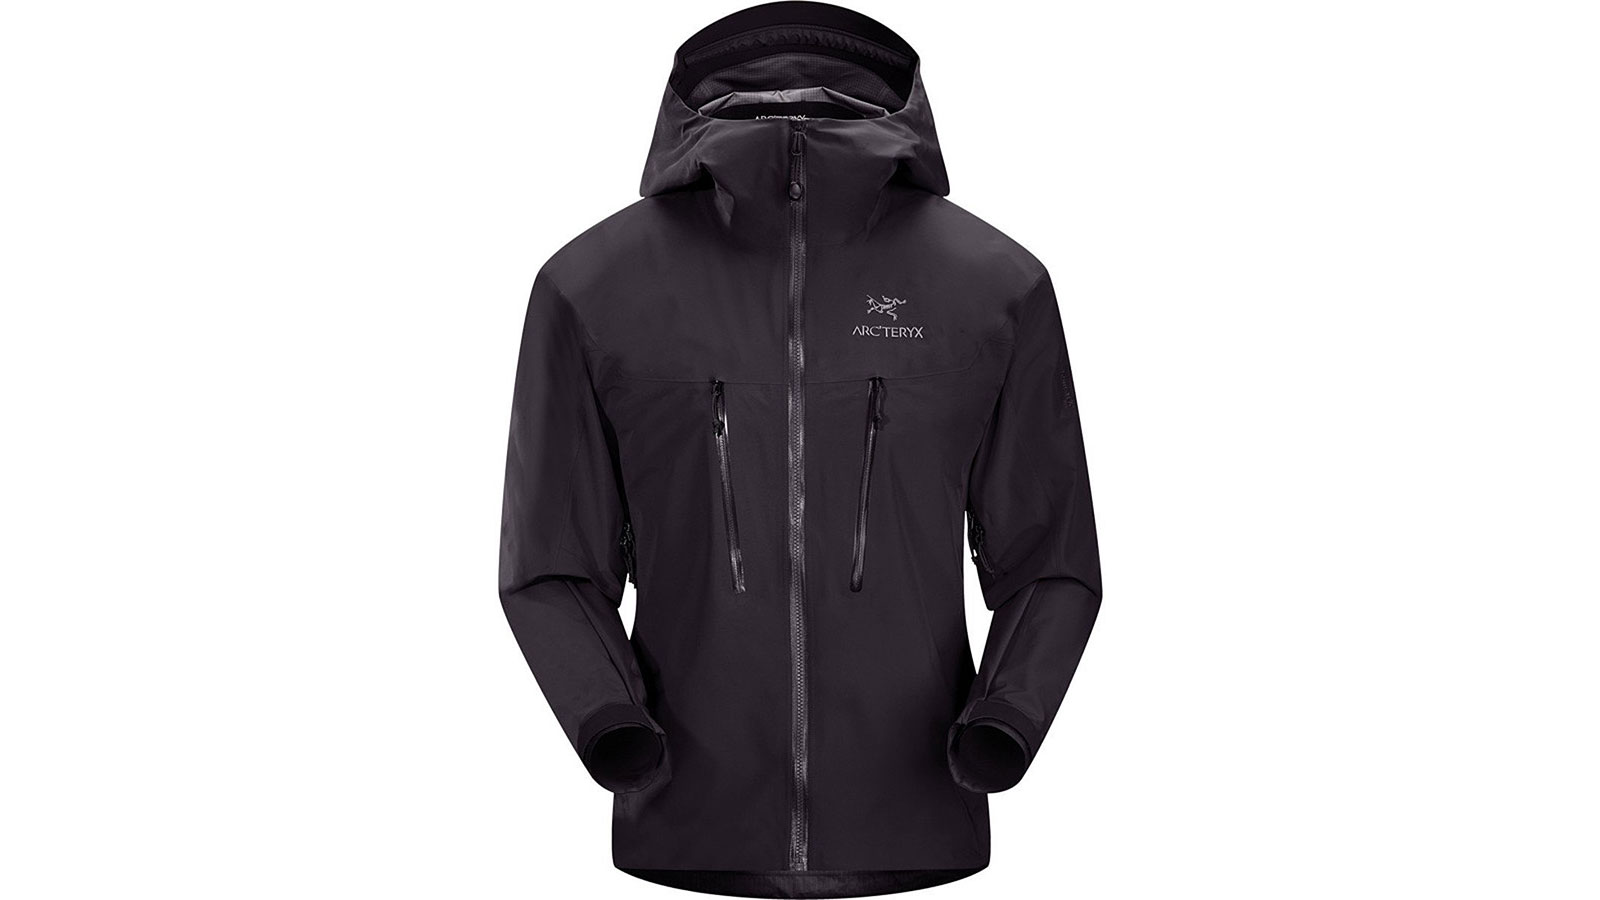 Arcteryx Alpha LT Men's Ski Jacket | The Best Men's Ski Jackets